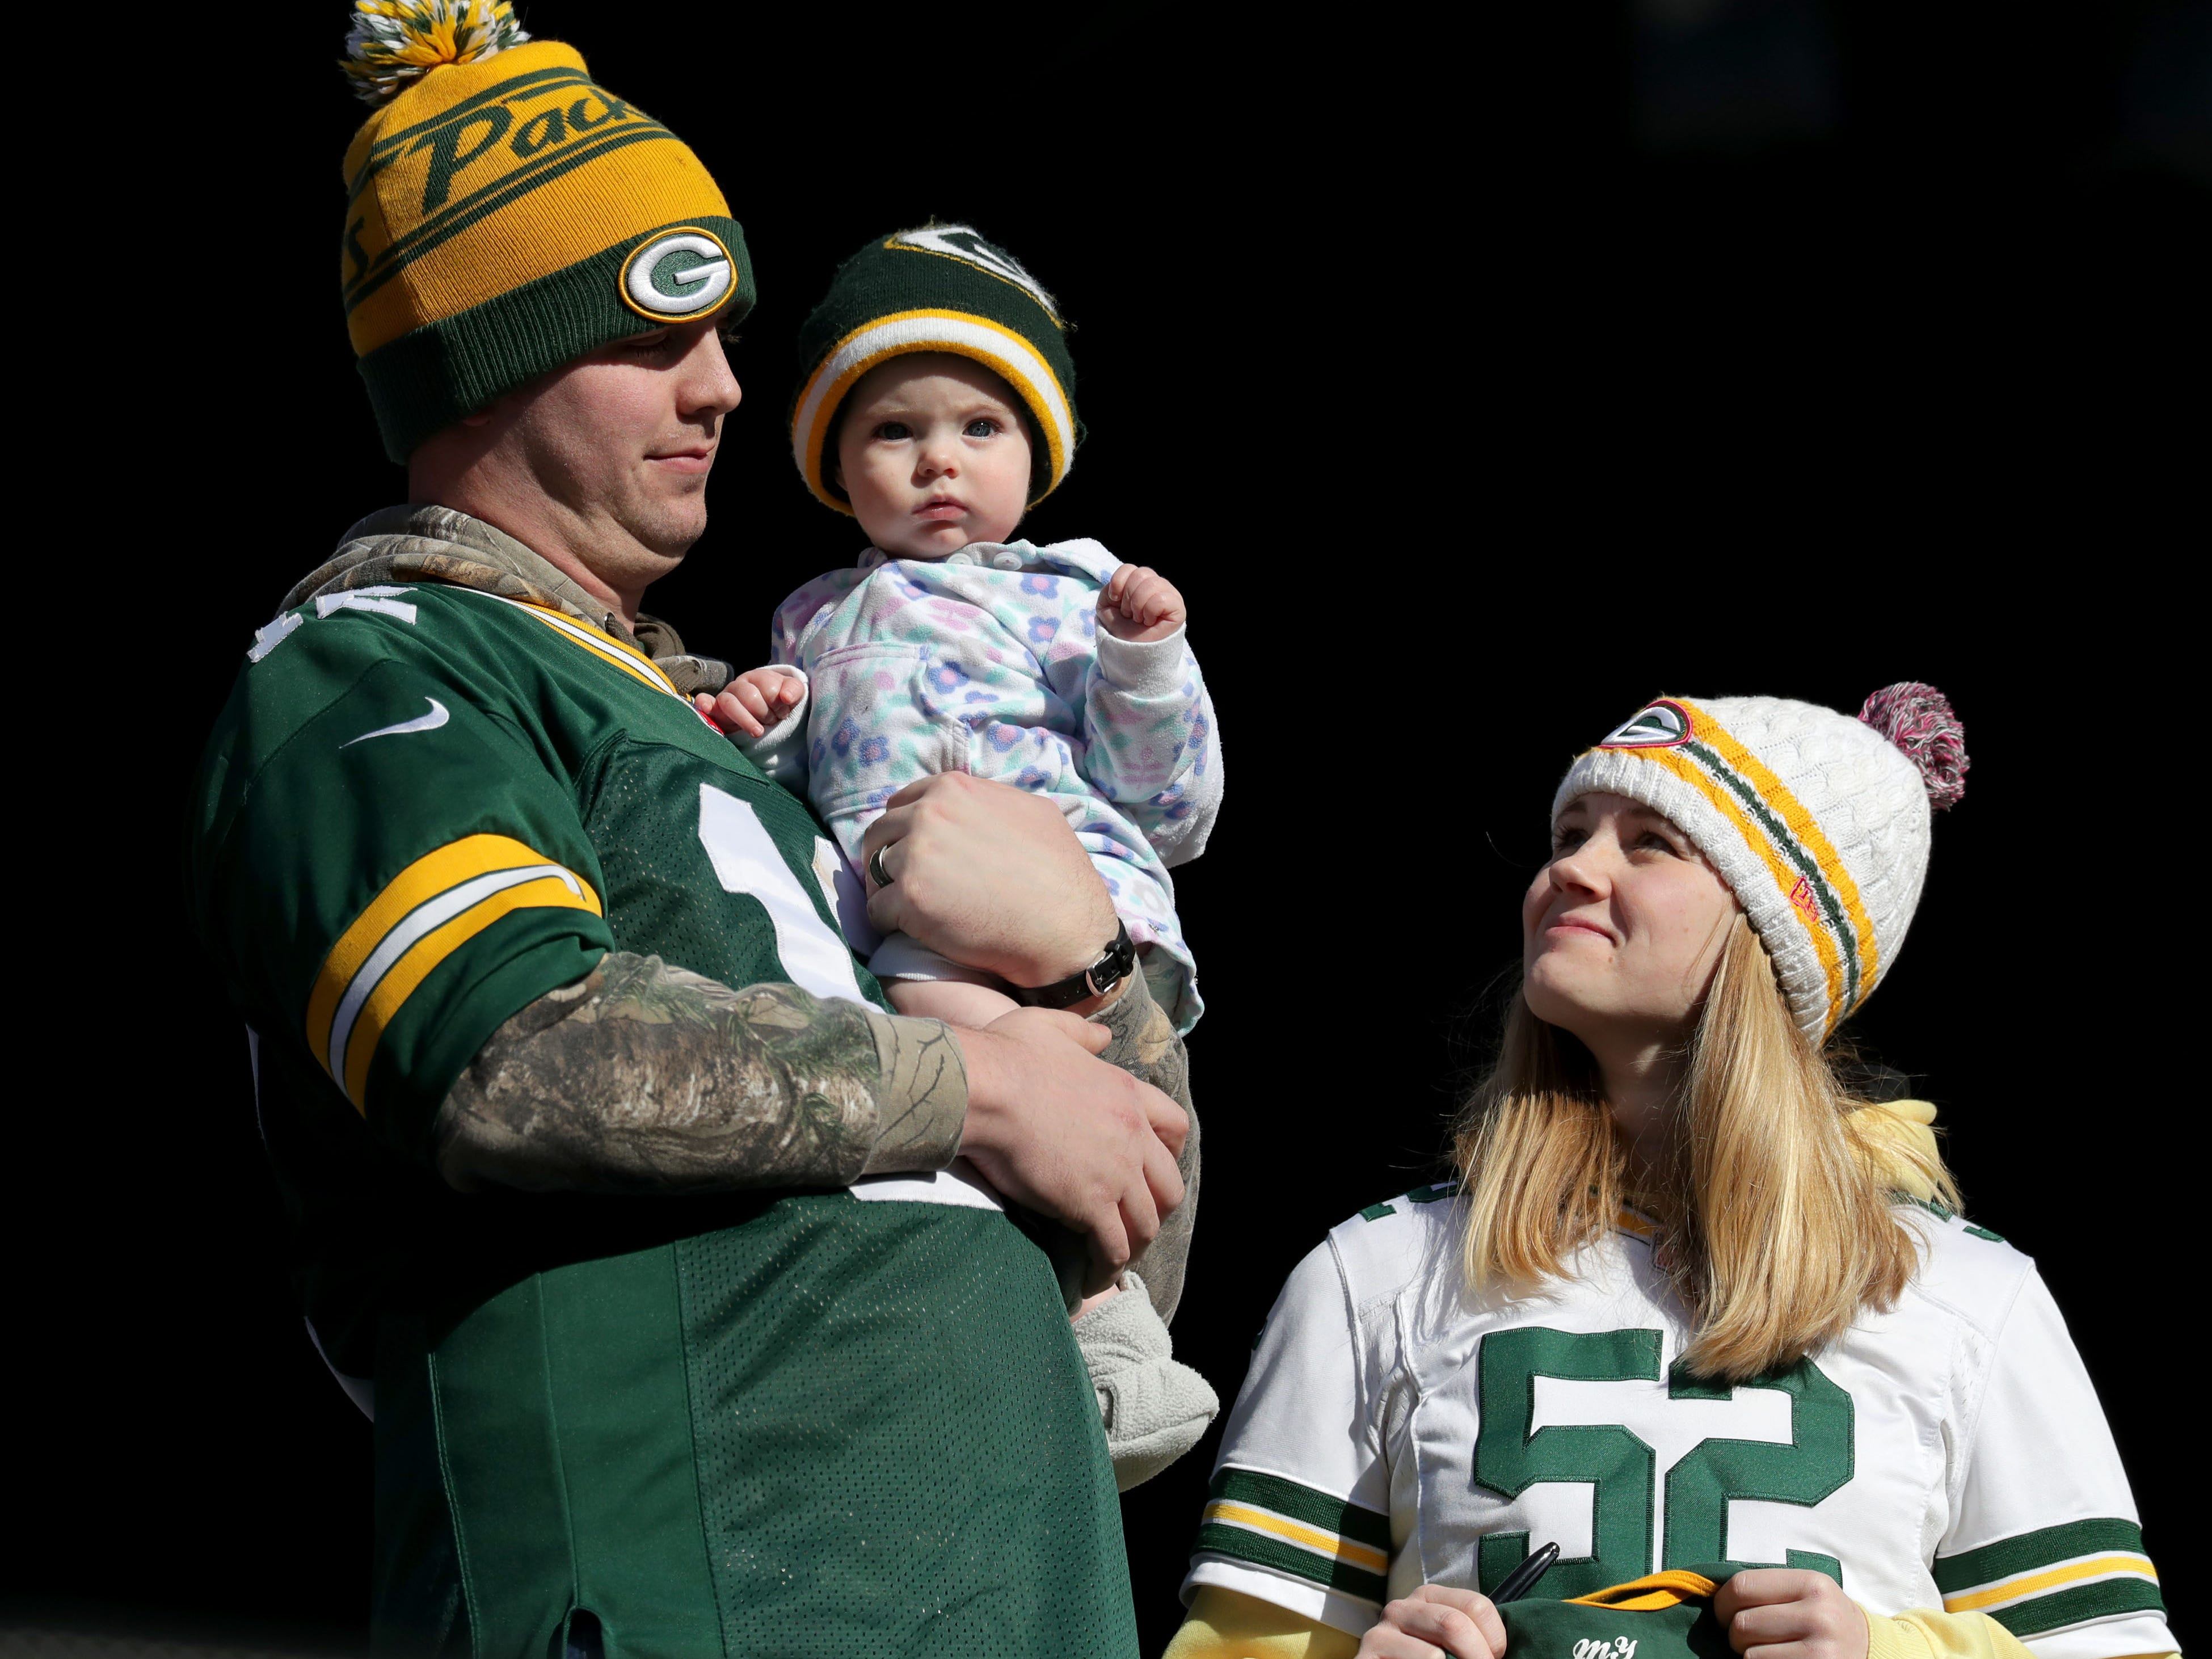 6-month-old Clara Points takes in her first Packers game with her father, Brent and mother (CQ) Mackenzie Points. The family traveled from their hometown of Wausau and were watching the team warm up before the Green Bay Packers game against the New York Jets at MetLife Stadium Sunday, Dec. 23, 2018, in East Rutherford.